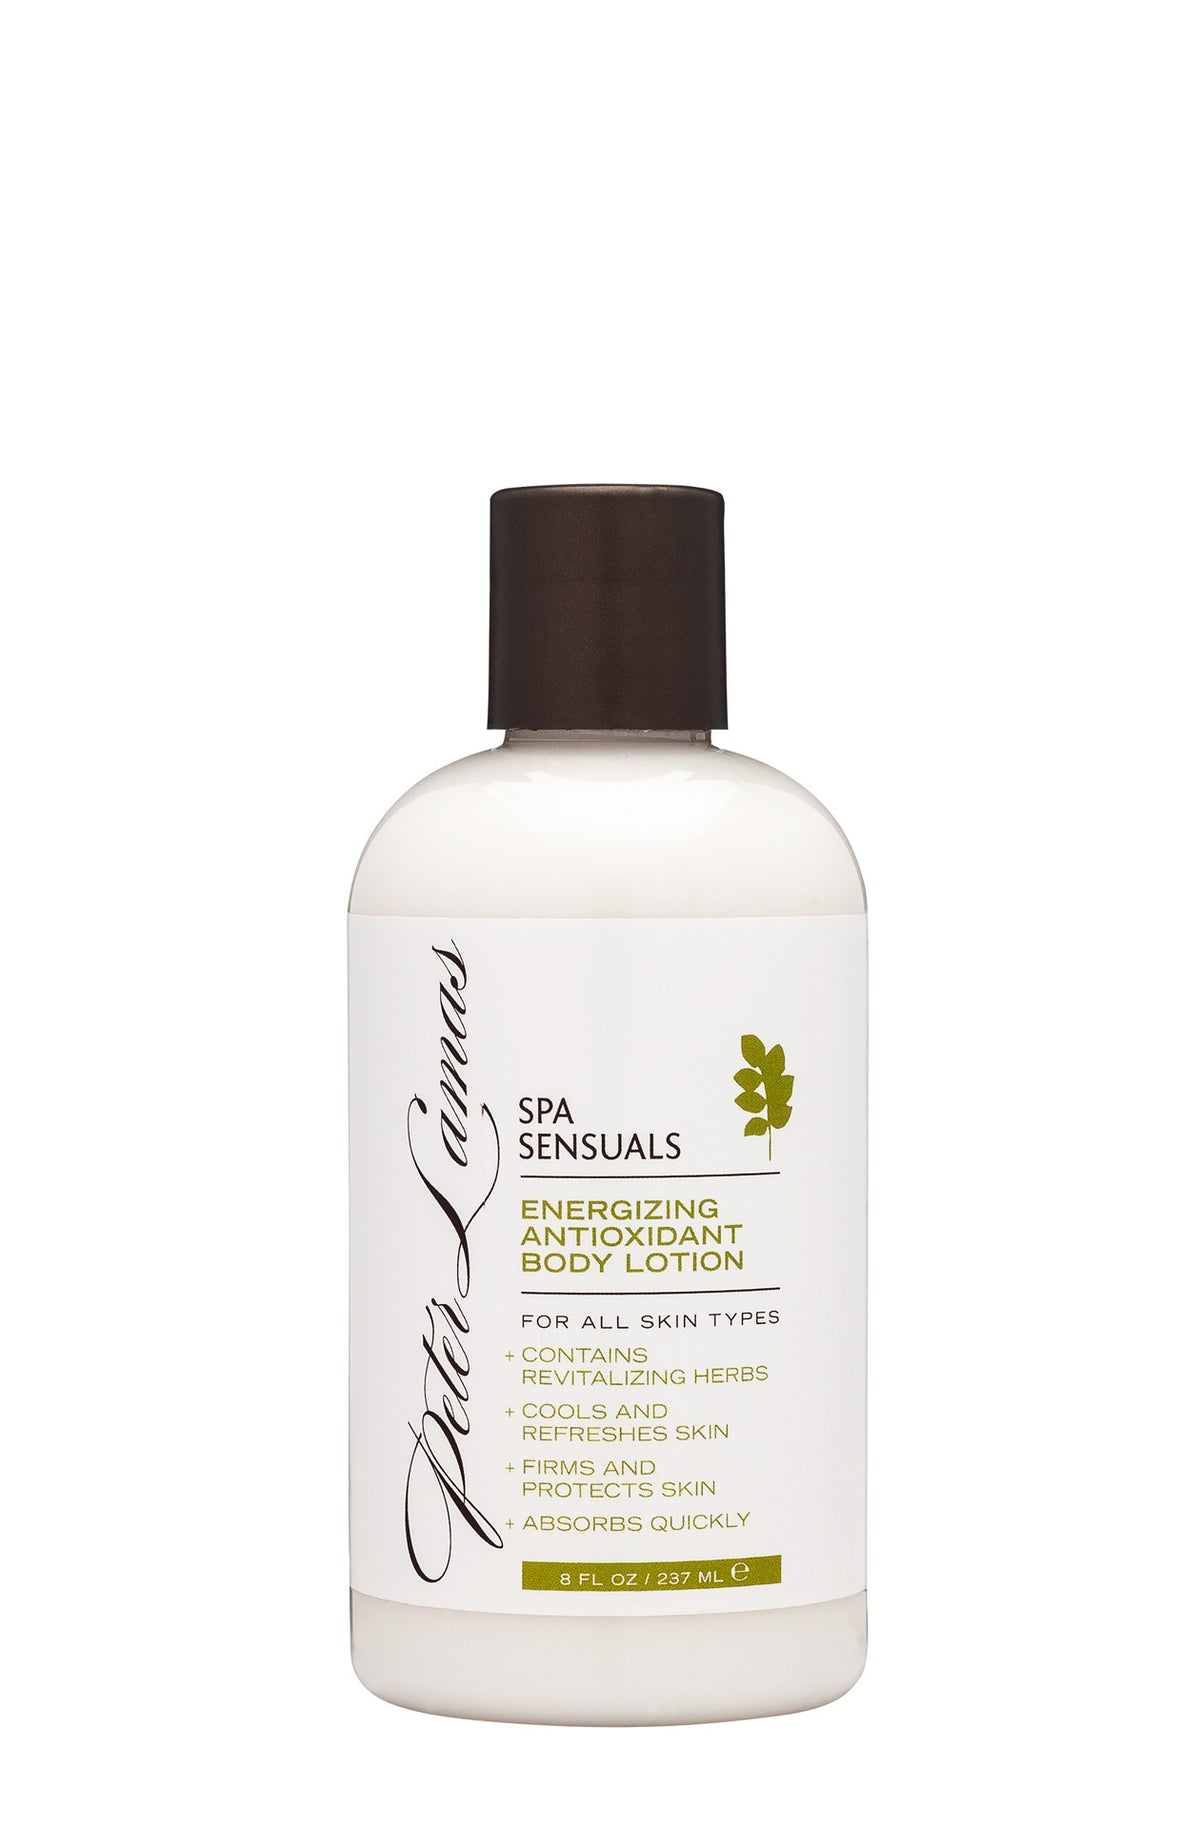 Energizing Antioxidant Body Lotion